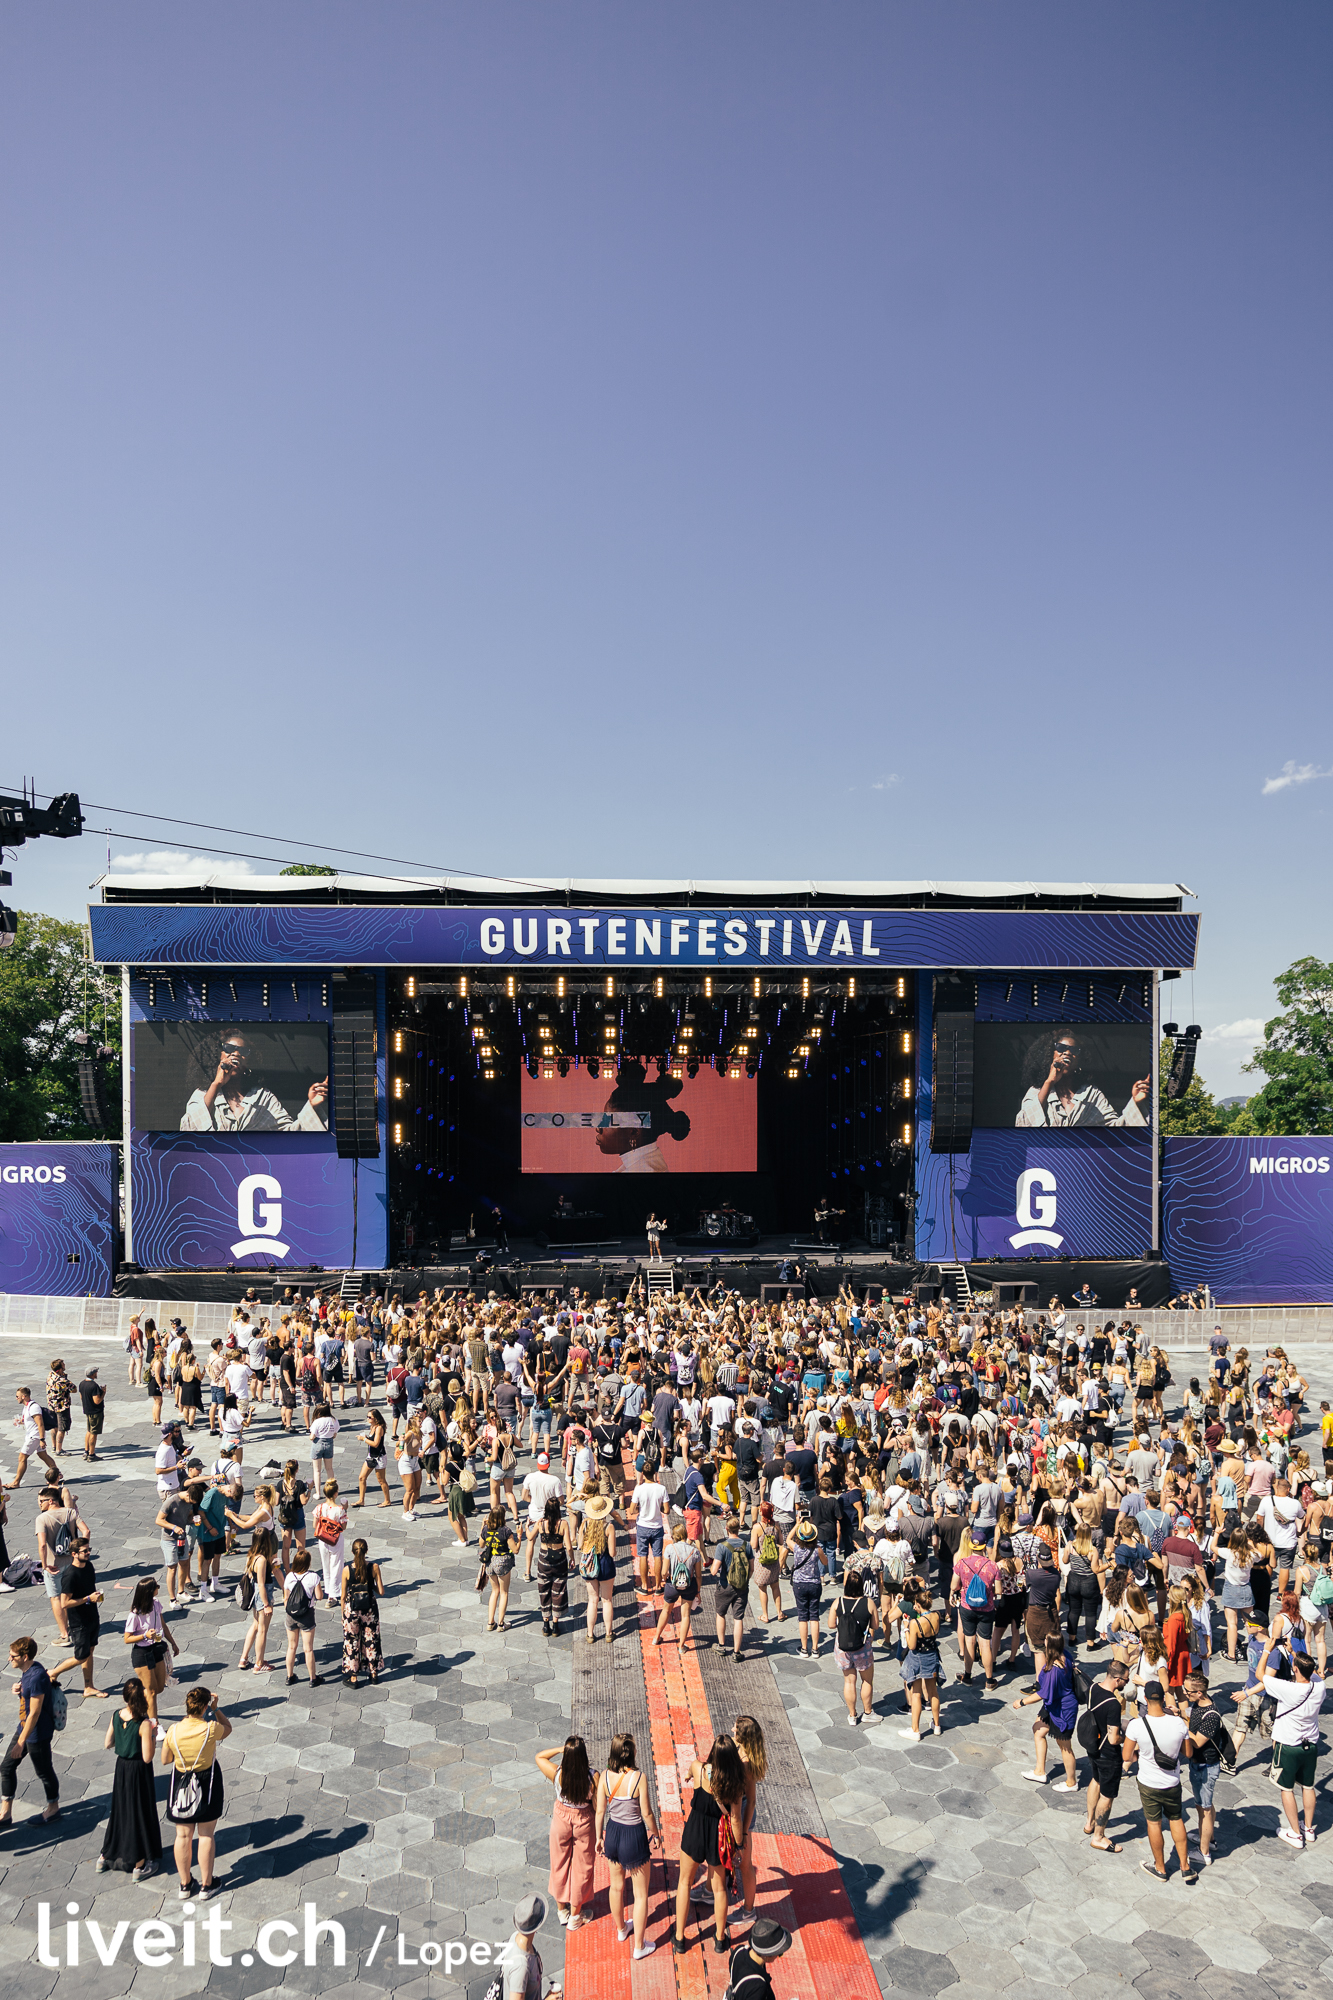 Coely am Gurtenfestival 2019